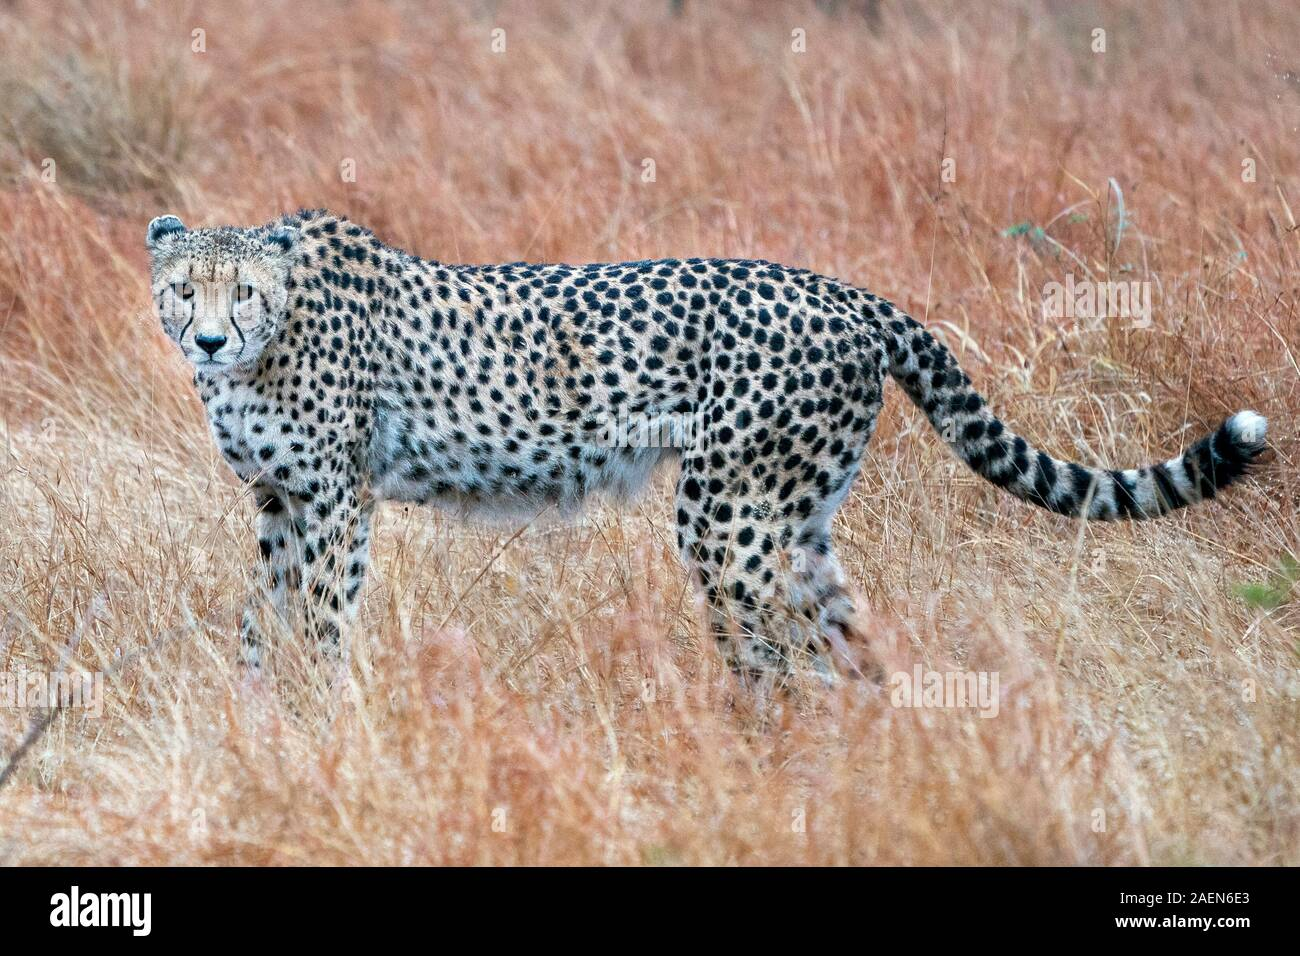 hunting cheetah portrait in kruger park south africa close up Stock Photo